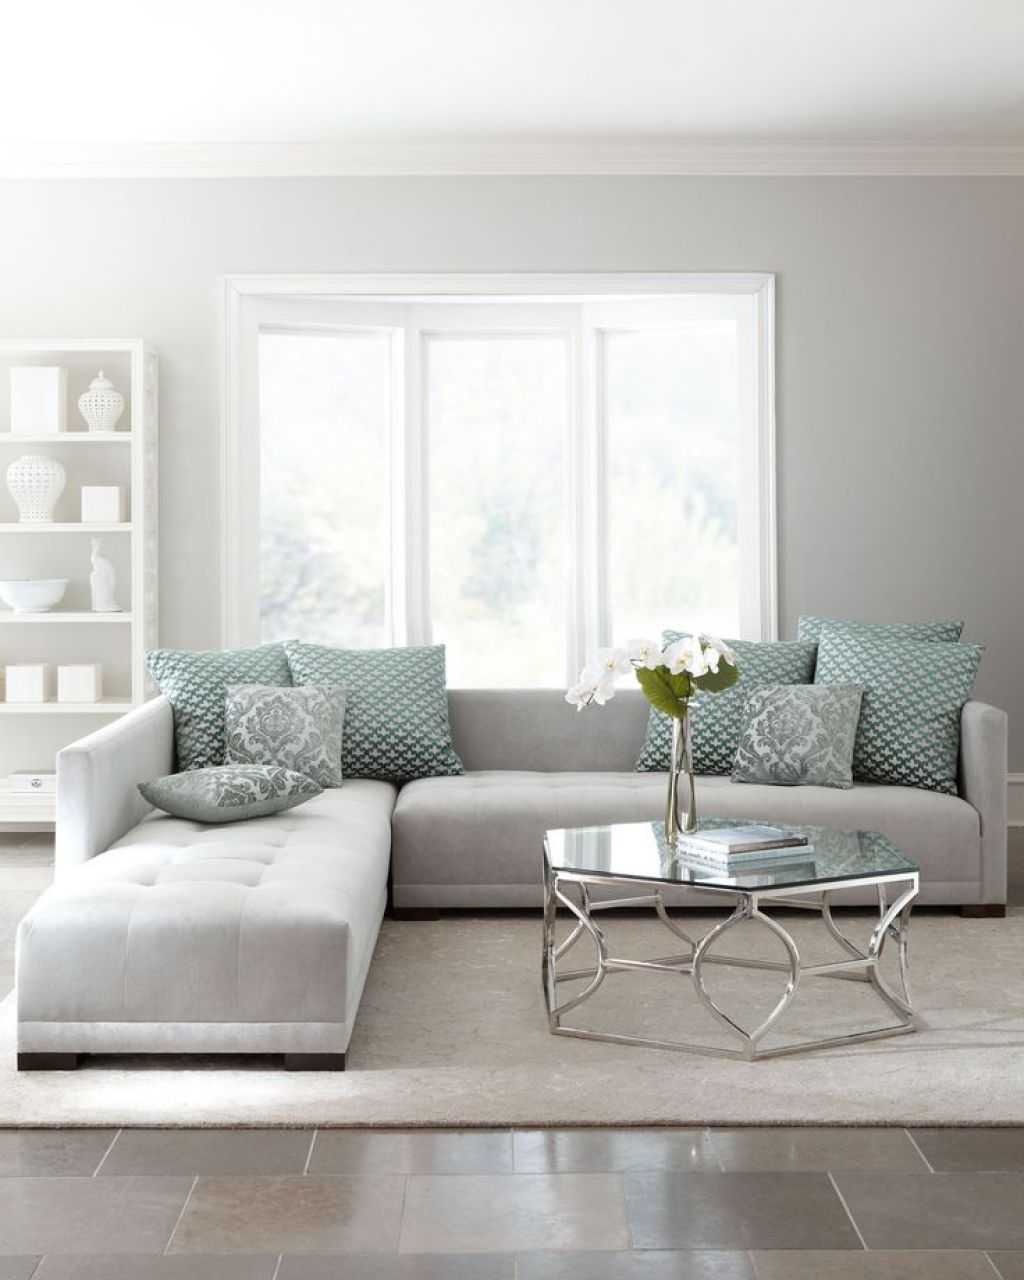 Living Room With Light Grey Sectional Sofa | Pinterest | Grey ...